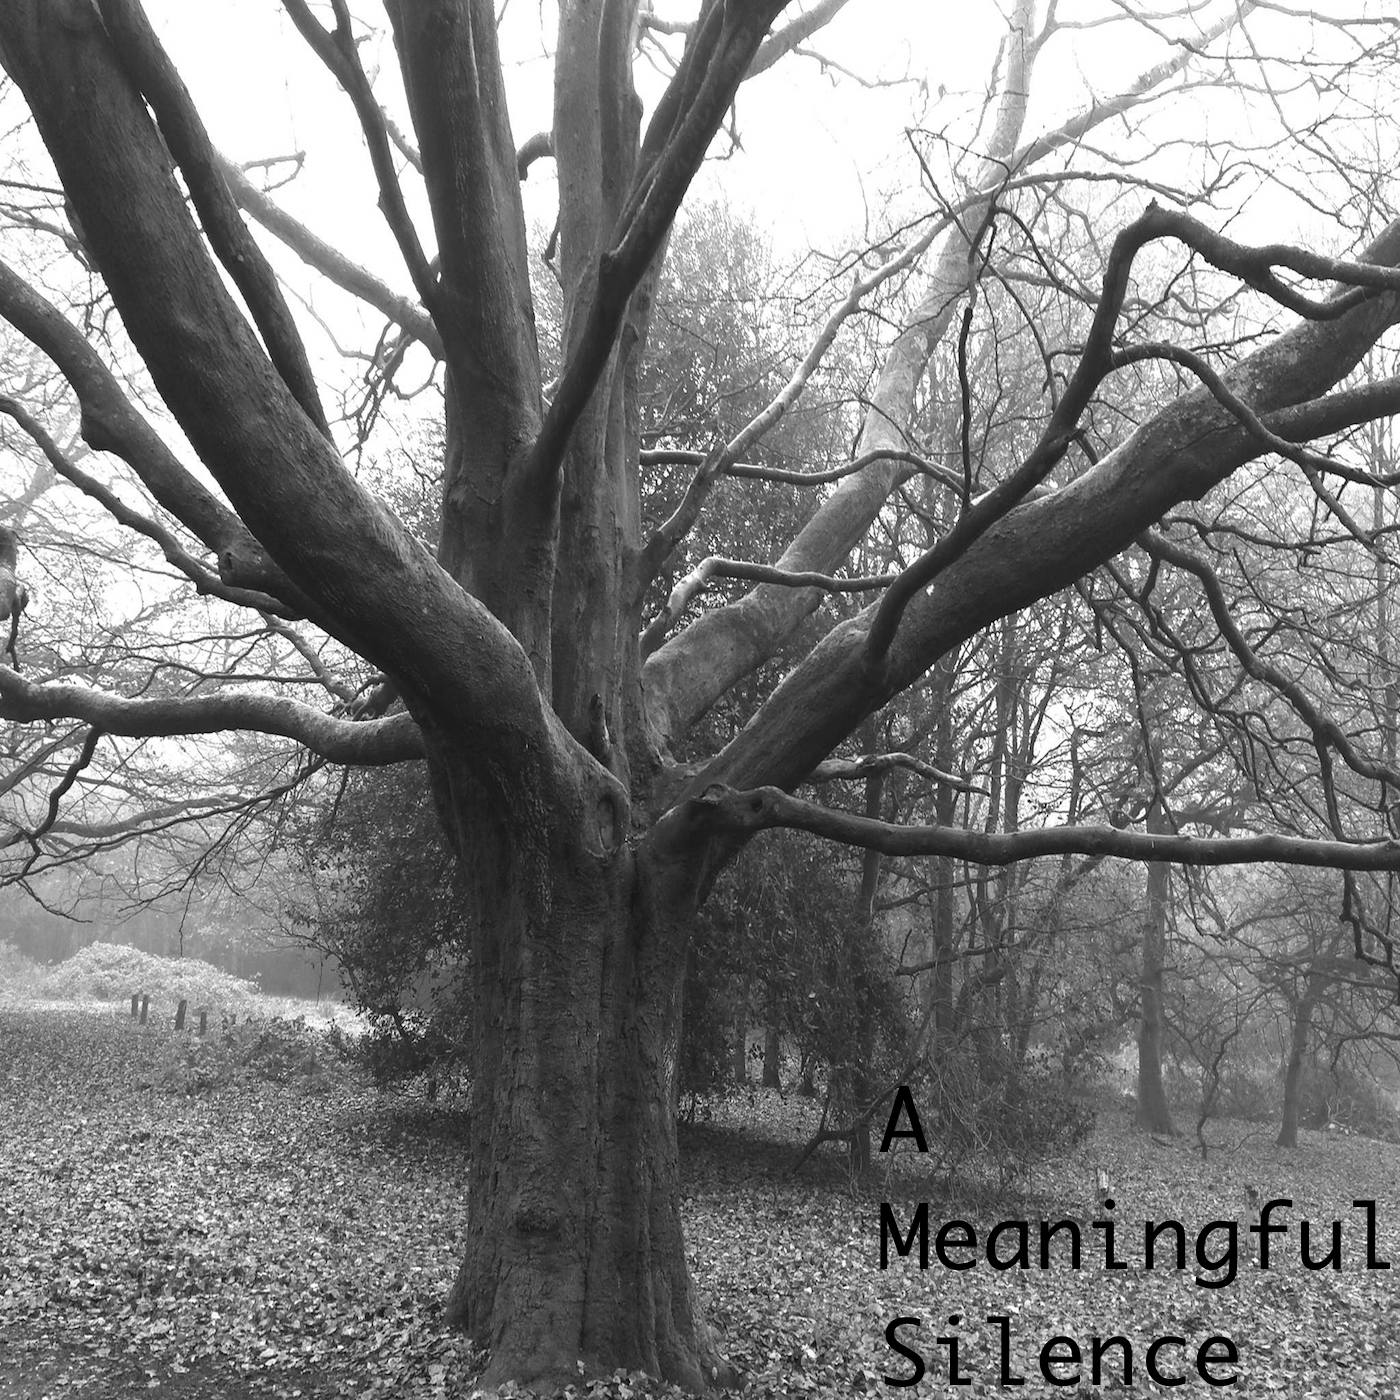 Over the last 3 weeks I have been very busy working with Kevin Buckland on an exciting new project. Today I am happy to unveil that project: A Meaningful Silence.  Recording in Leeds, Birmingham, and Bath we have released our debut EP 'Emergence' on our BandCamp today! For fans of instrumental and ambient music please explore our page, and see what we have been up to.